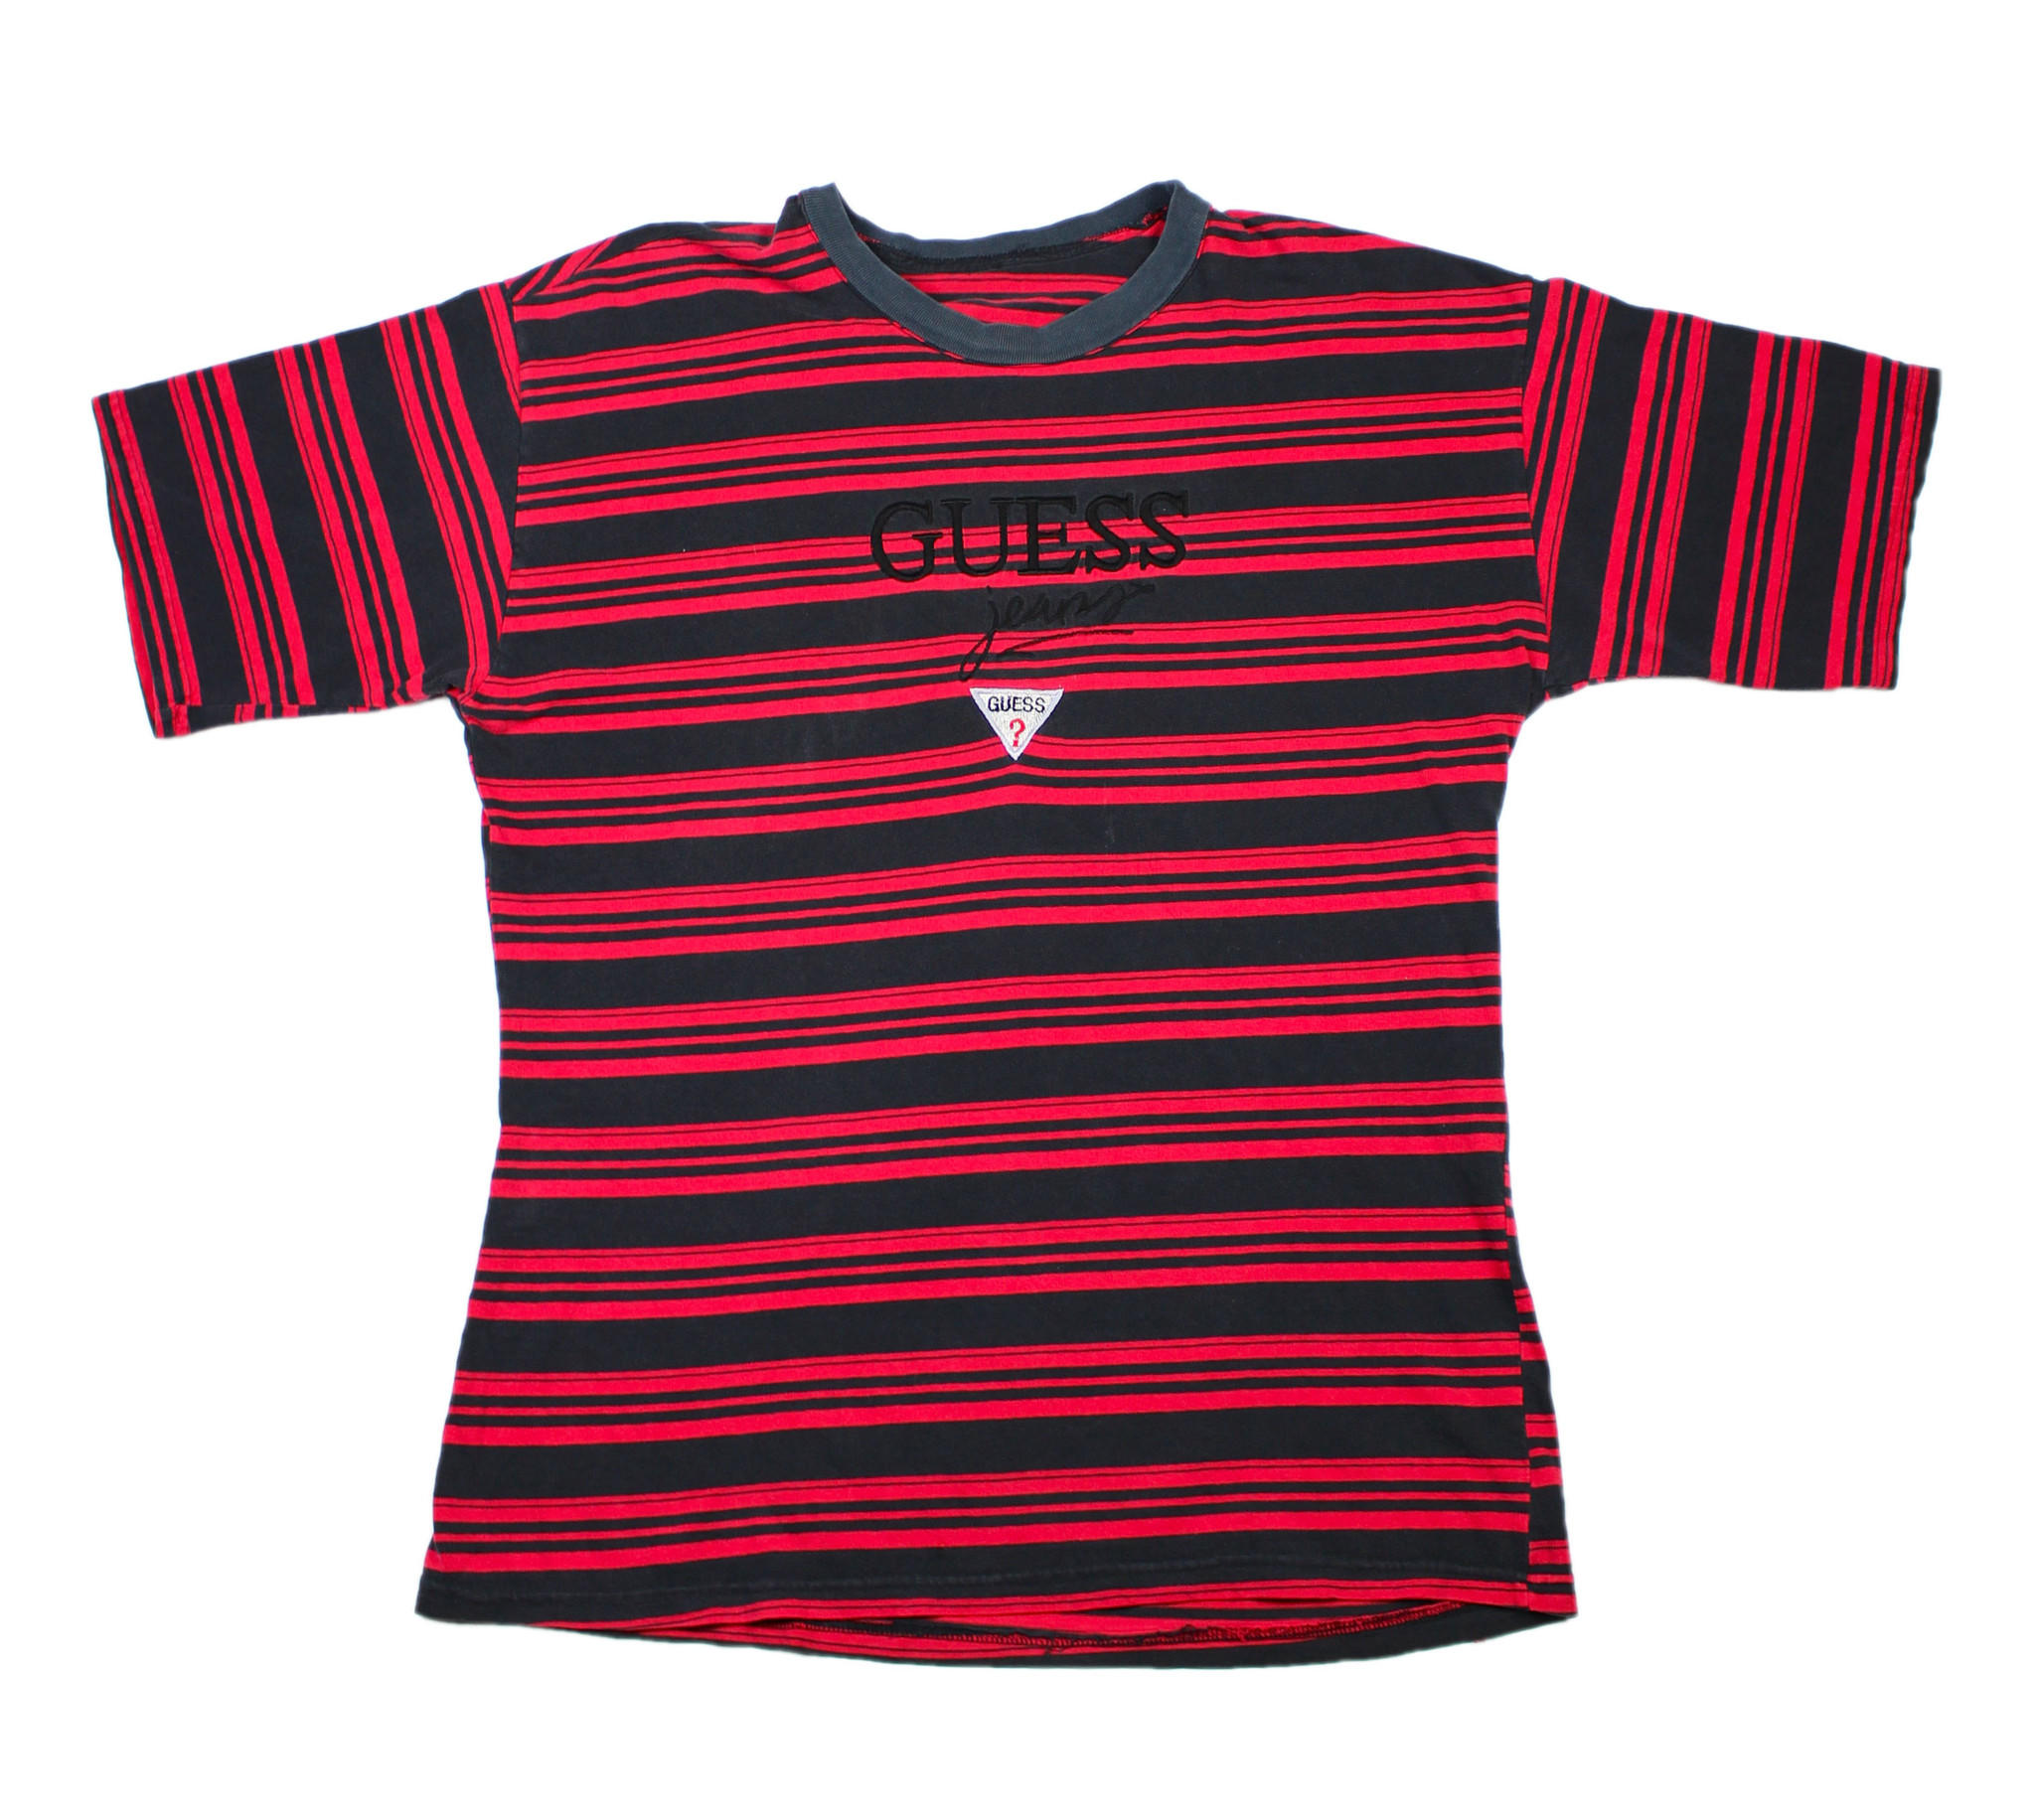 Vintage 90s GUESS Striped T Shirt In From Vintage Mens Goods